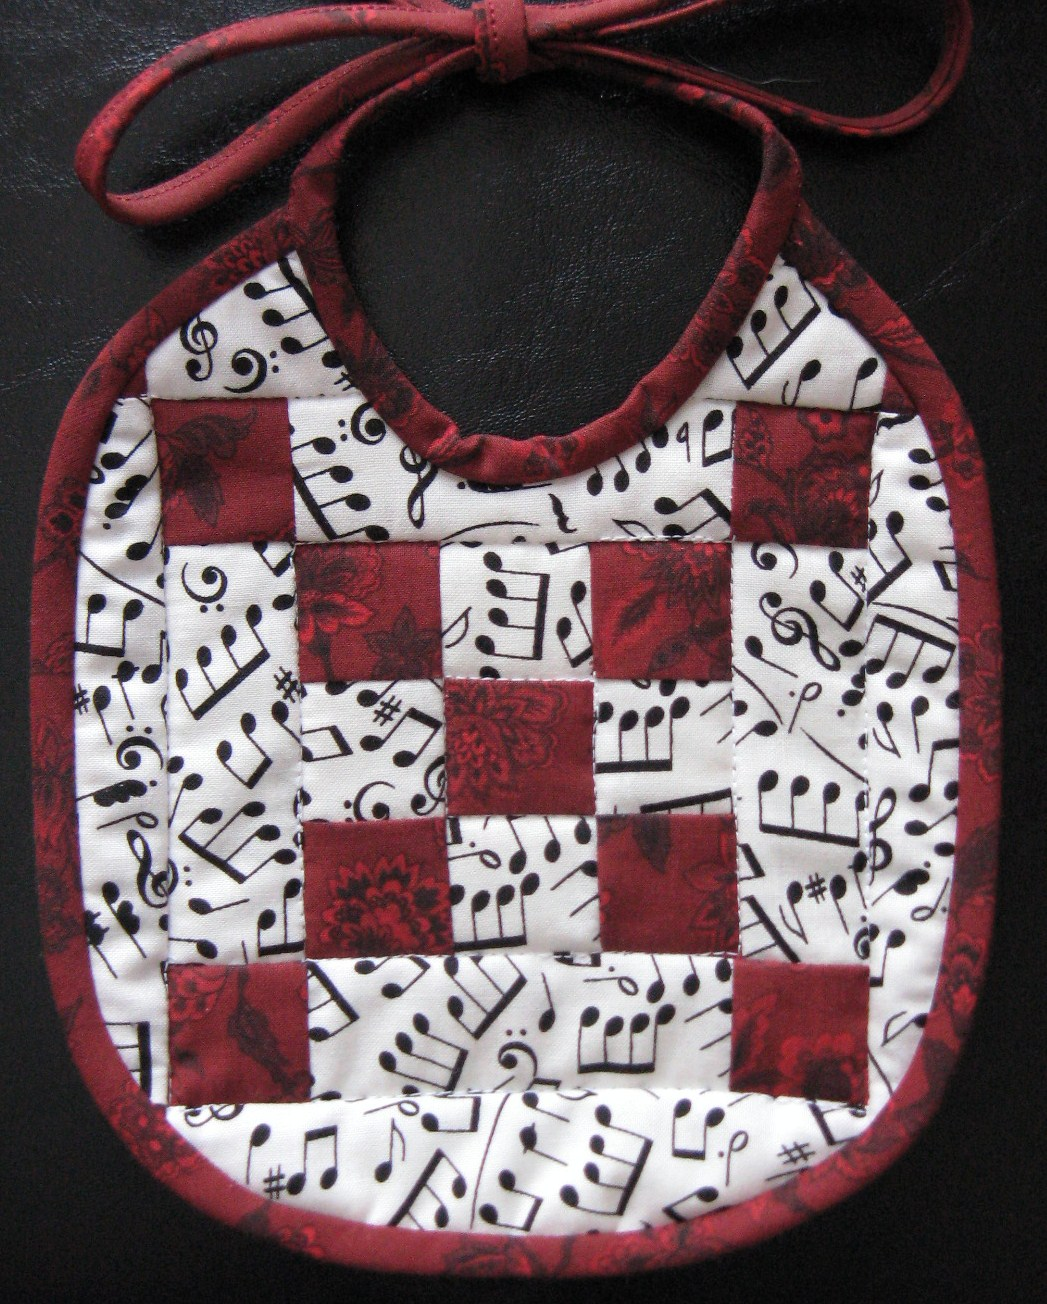 Nine-patch quilted baby bib